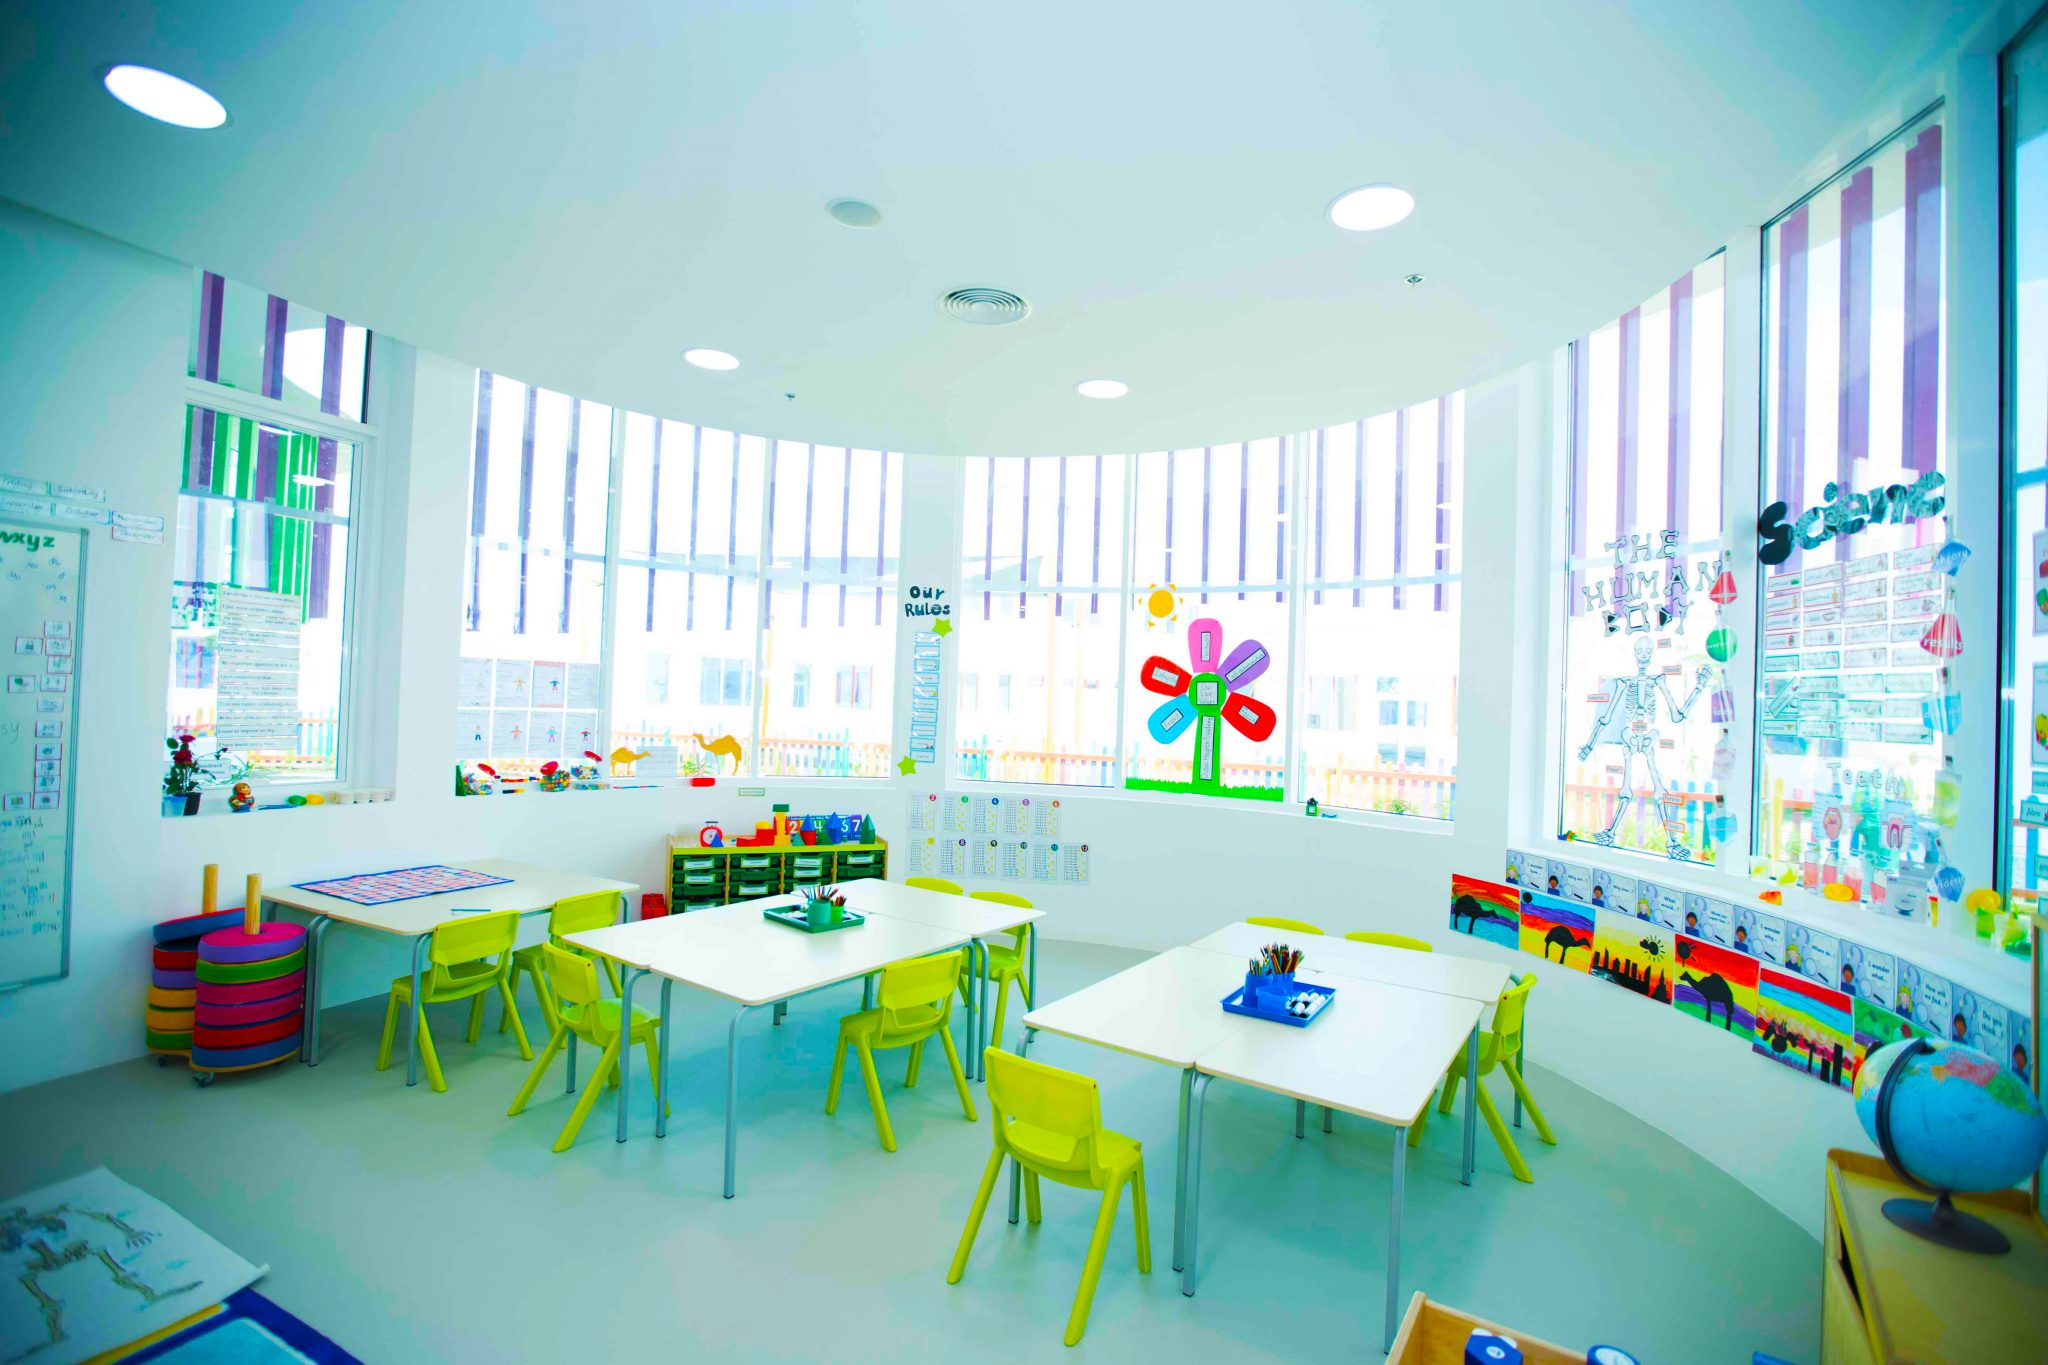 Photograph of a classroom at Dubai Heights Academy in Dubai